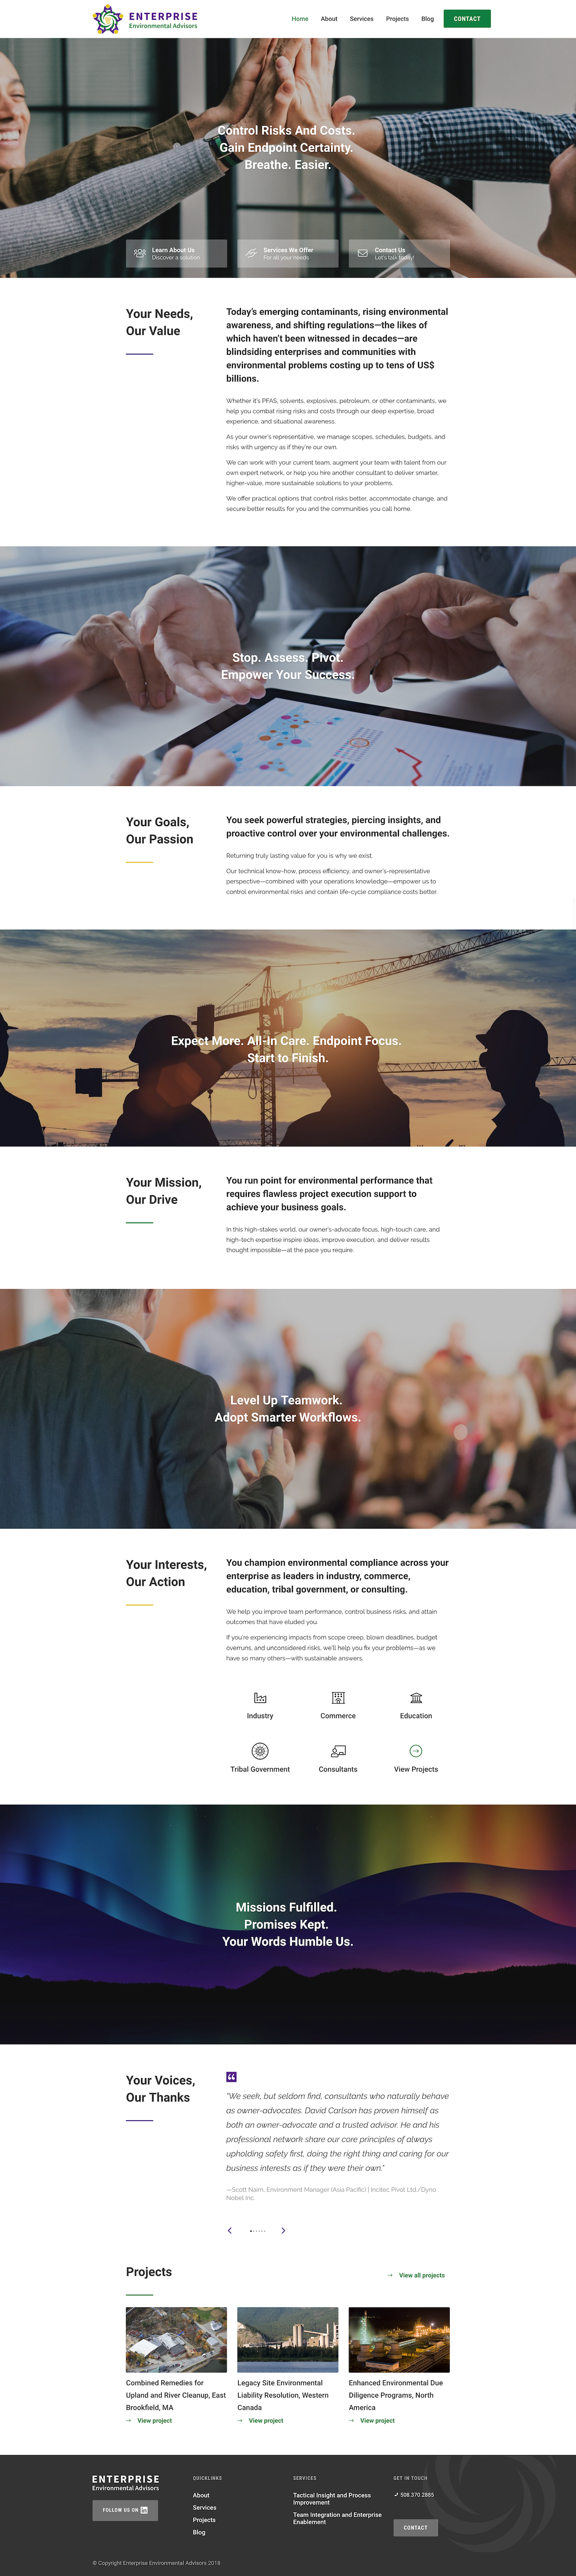 Enterprise Environmental Advisors full landing page